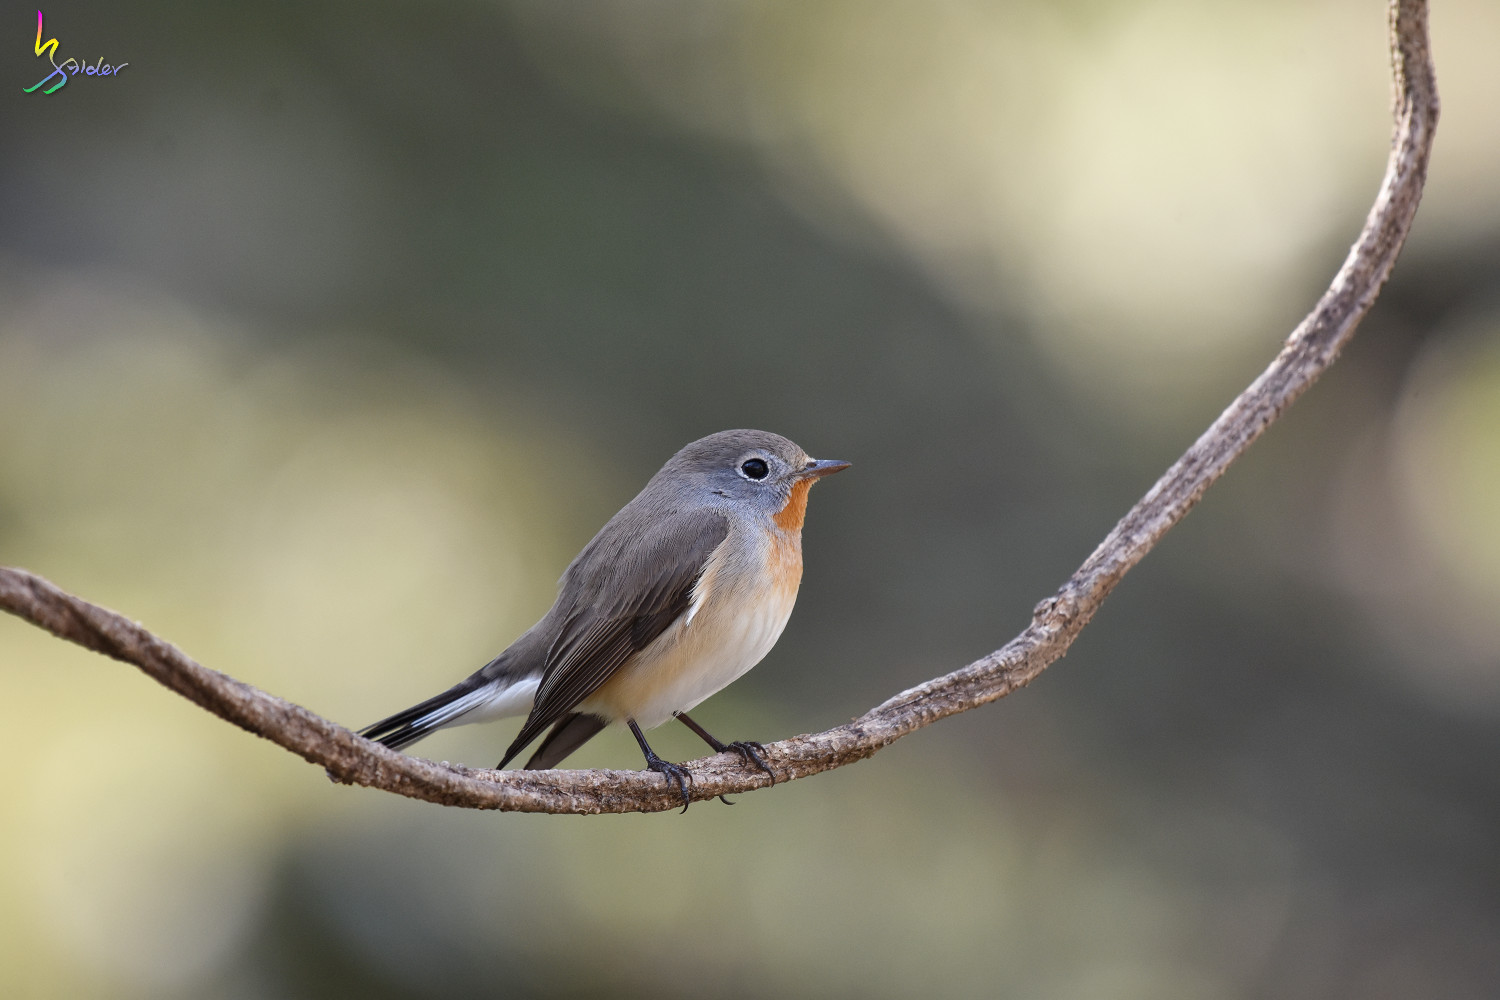 Red-breasted_Flycatcher_6840